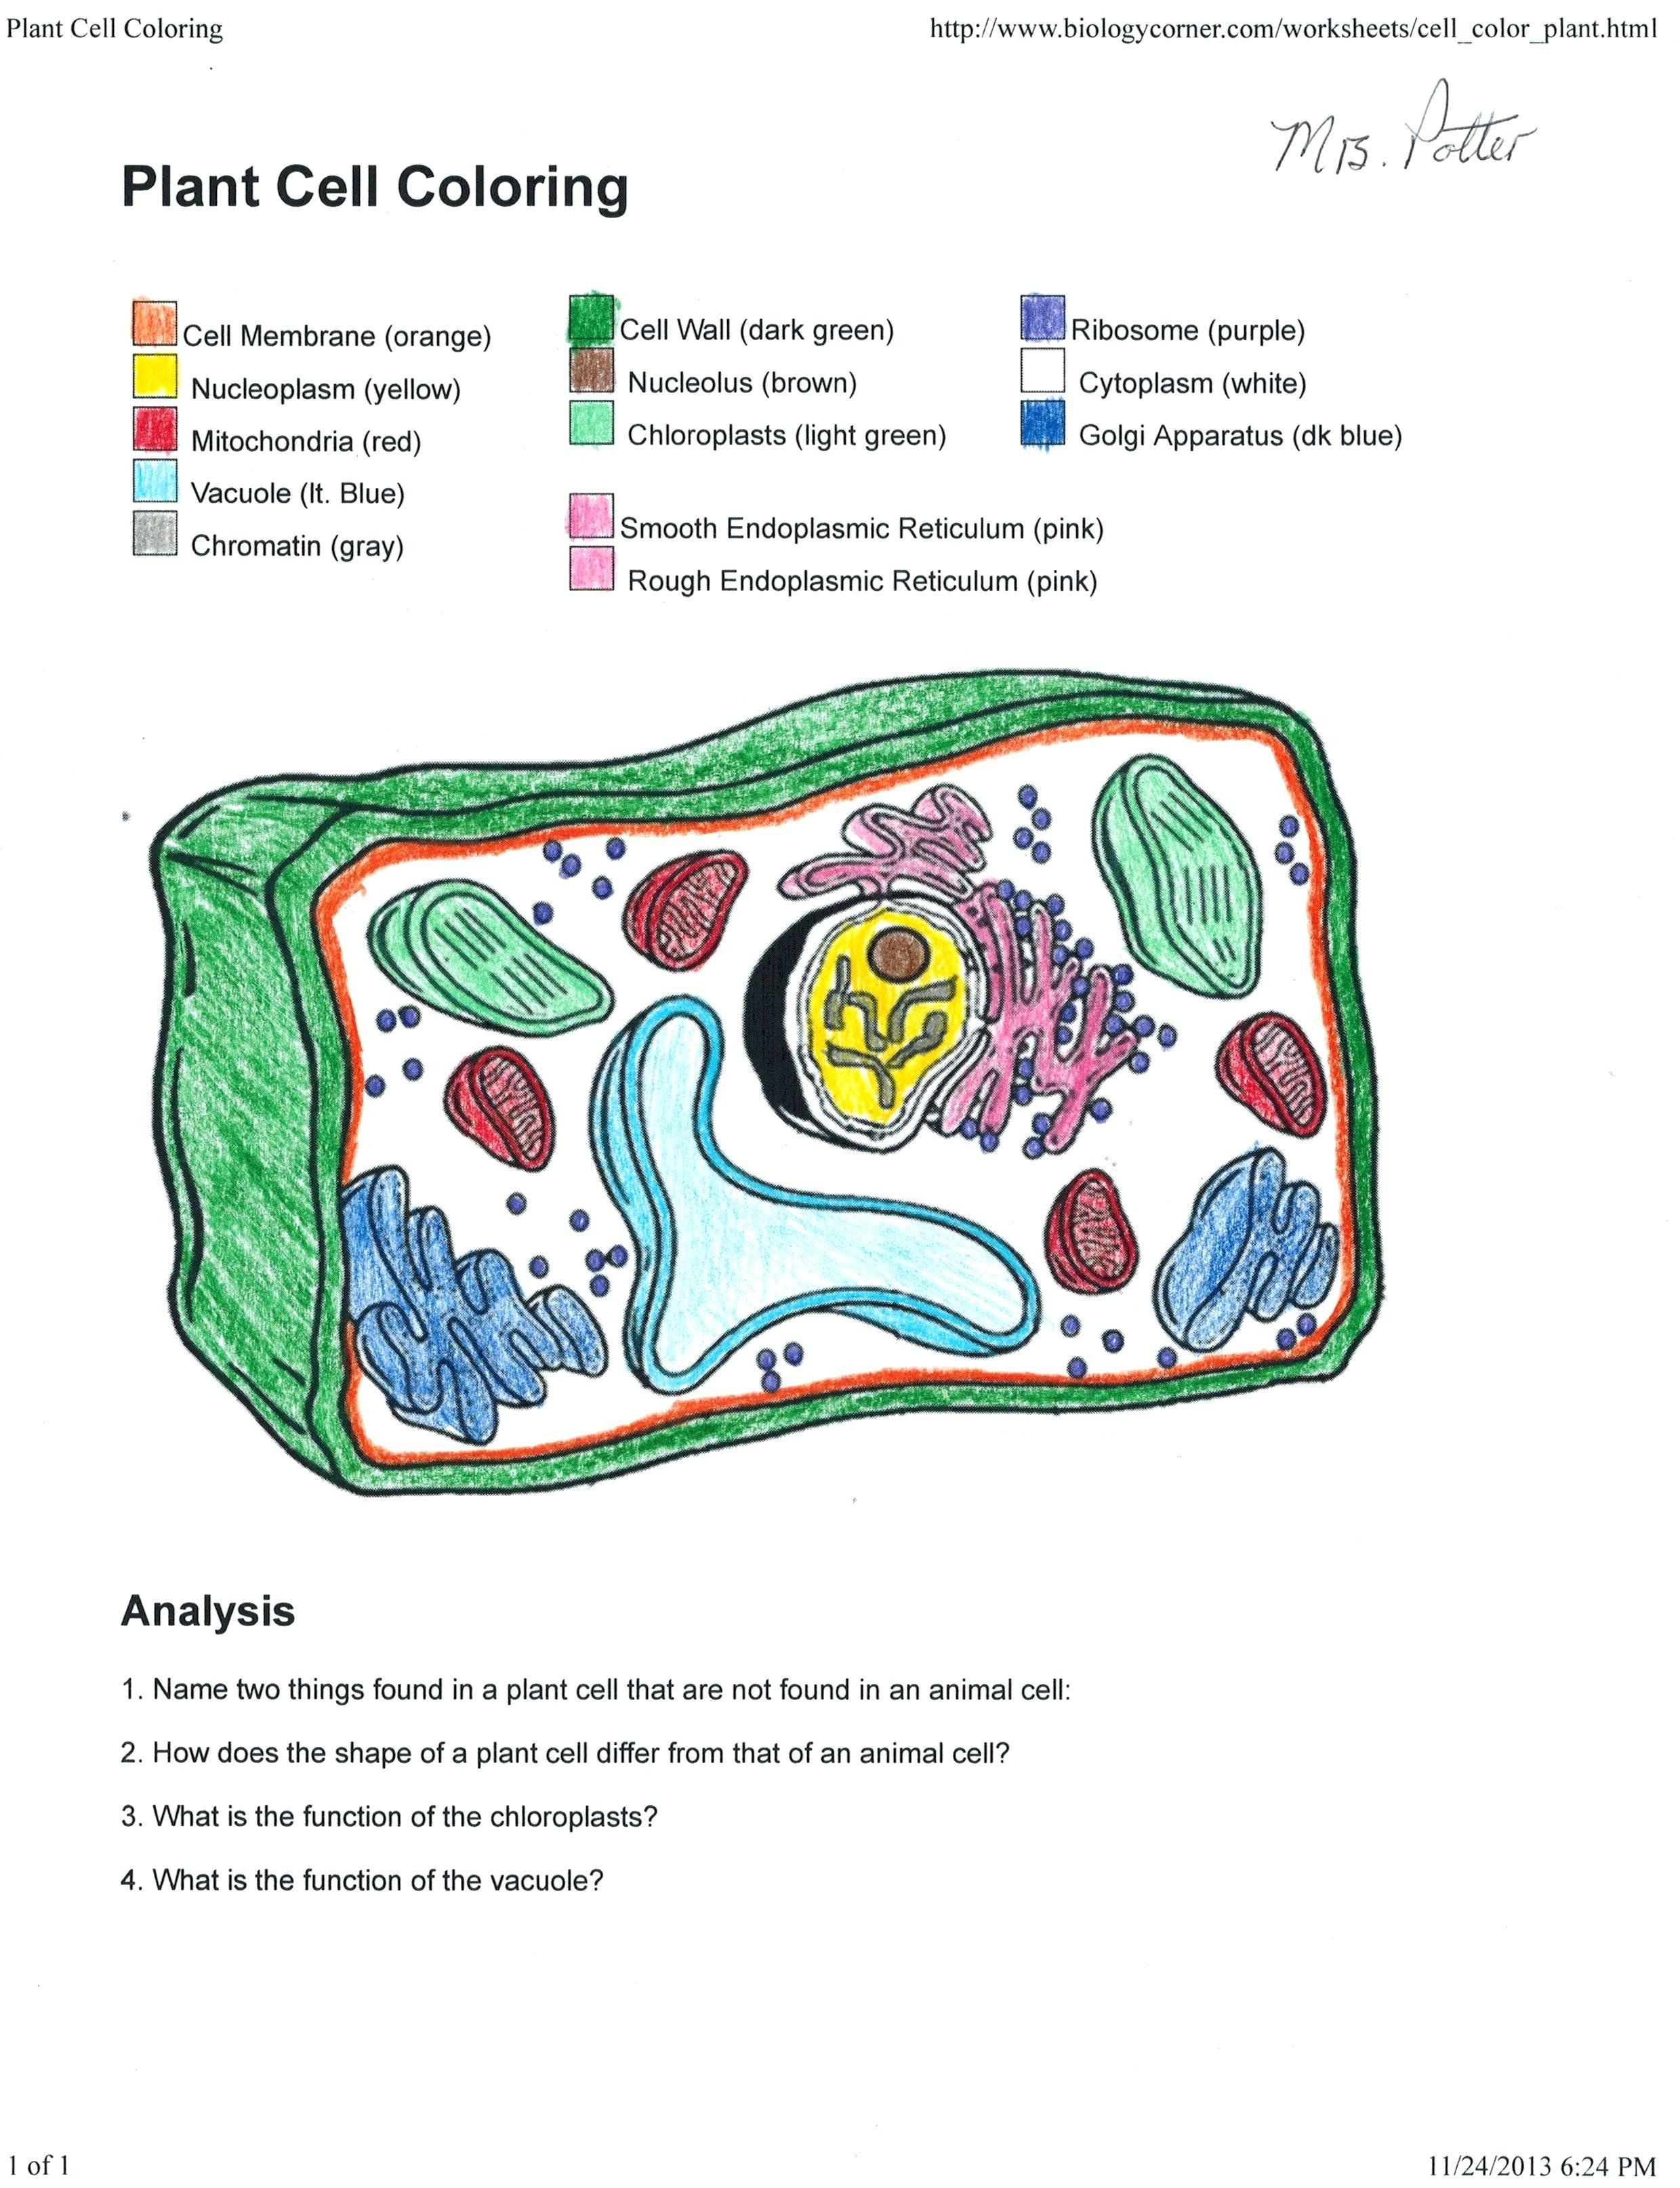 Plant Cell Coloring Key New Biology Coloring Sheet